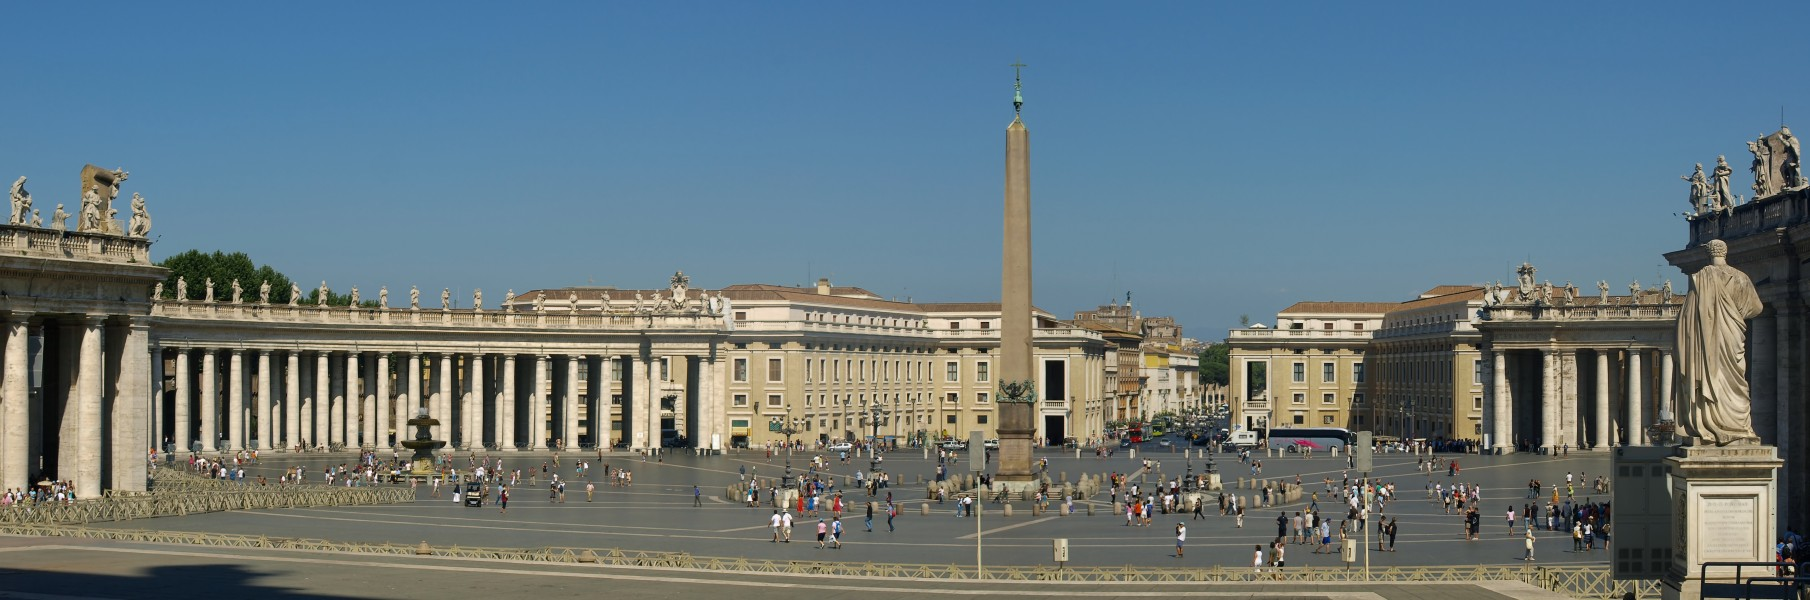 Panorama of Saint Peter's Square